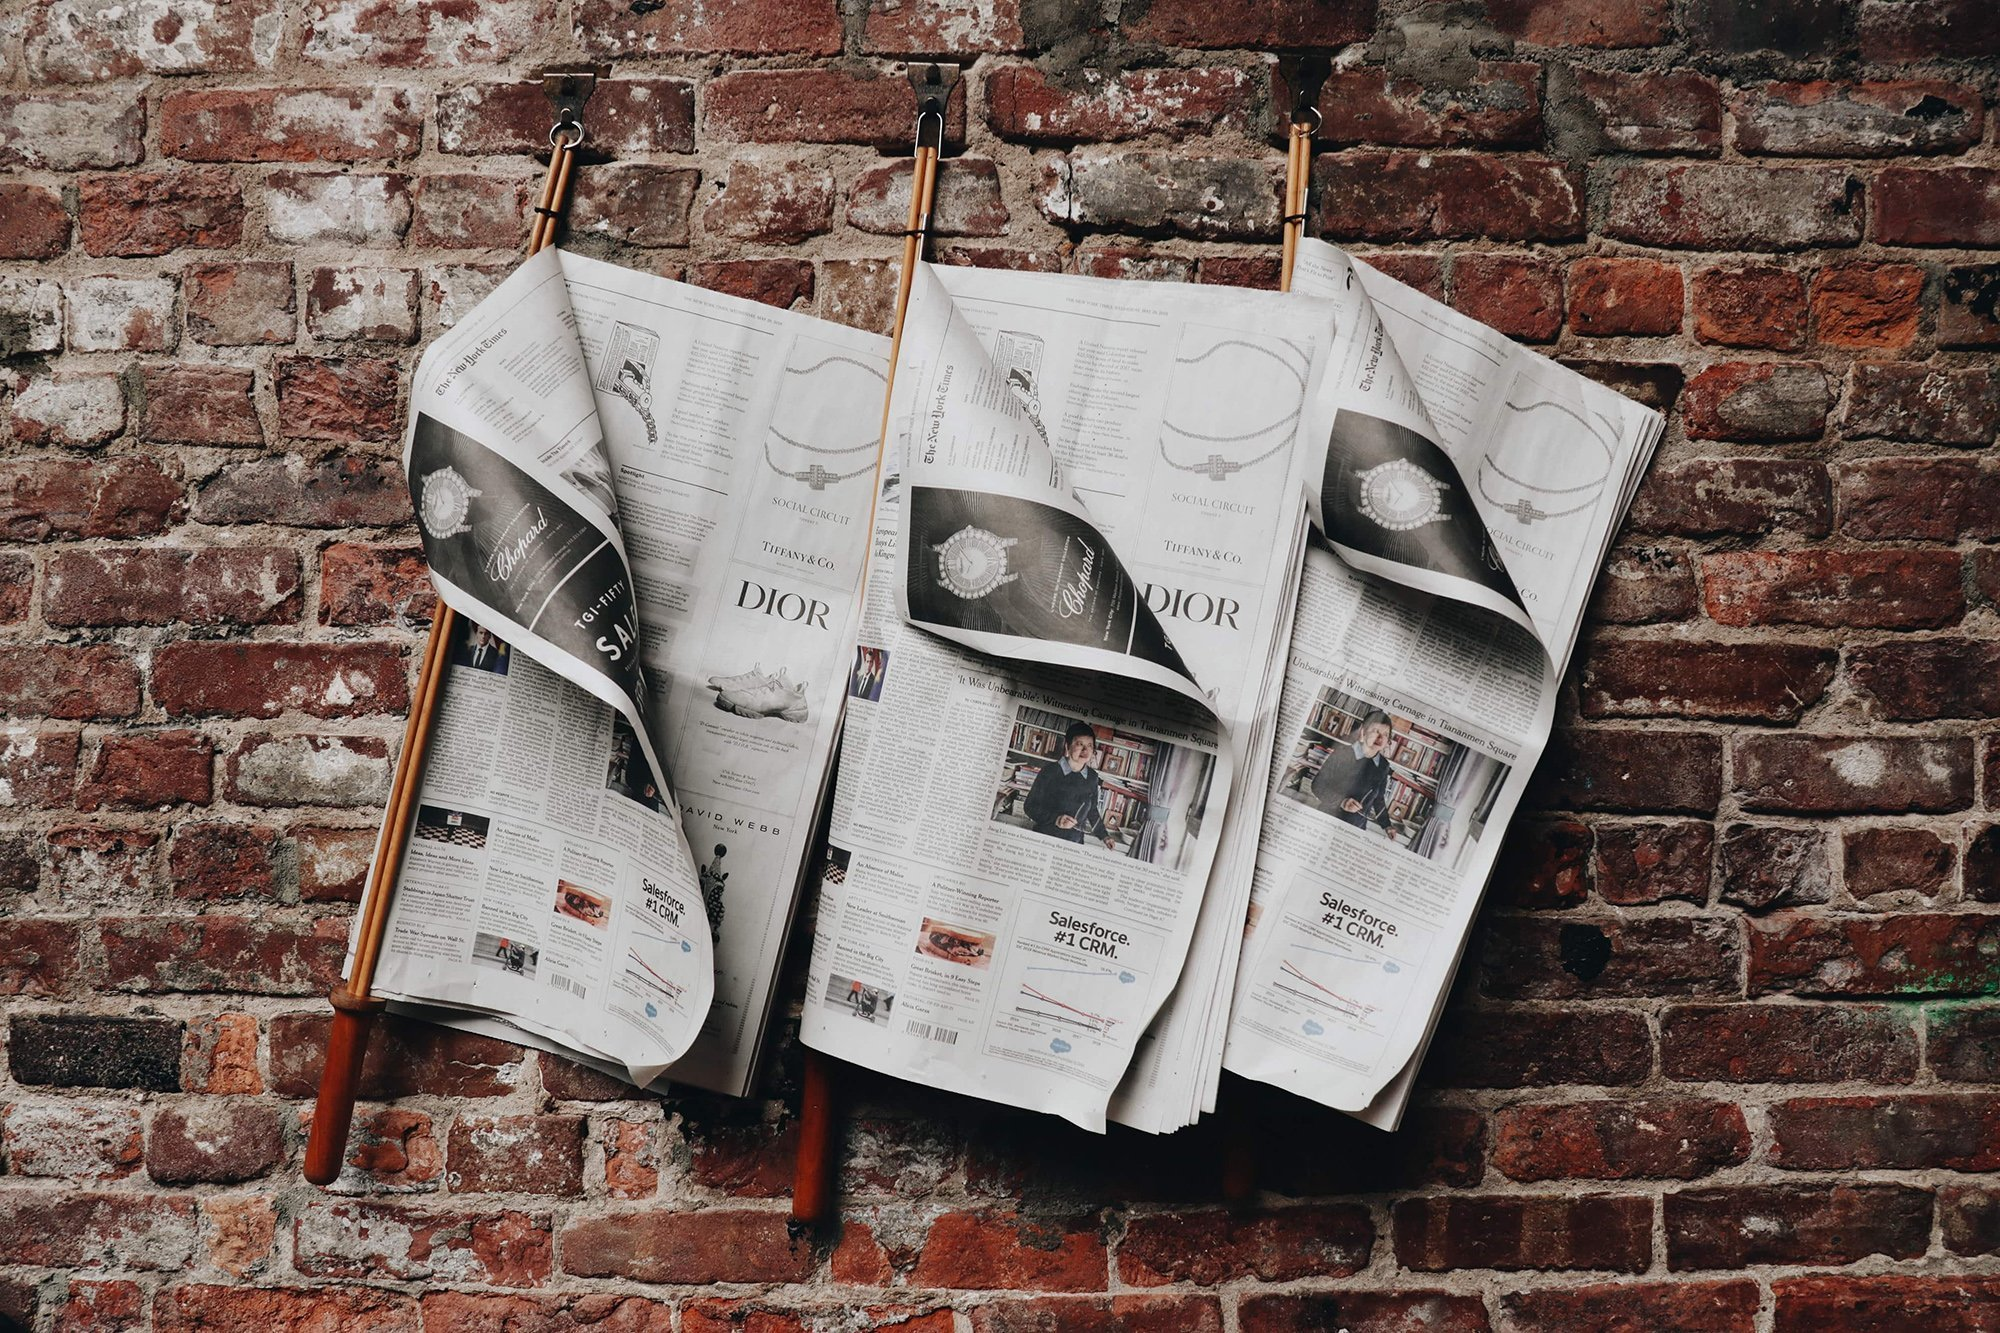 newspaper ads hanging on a wall